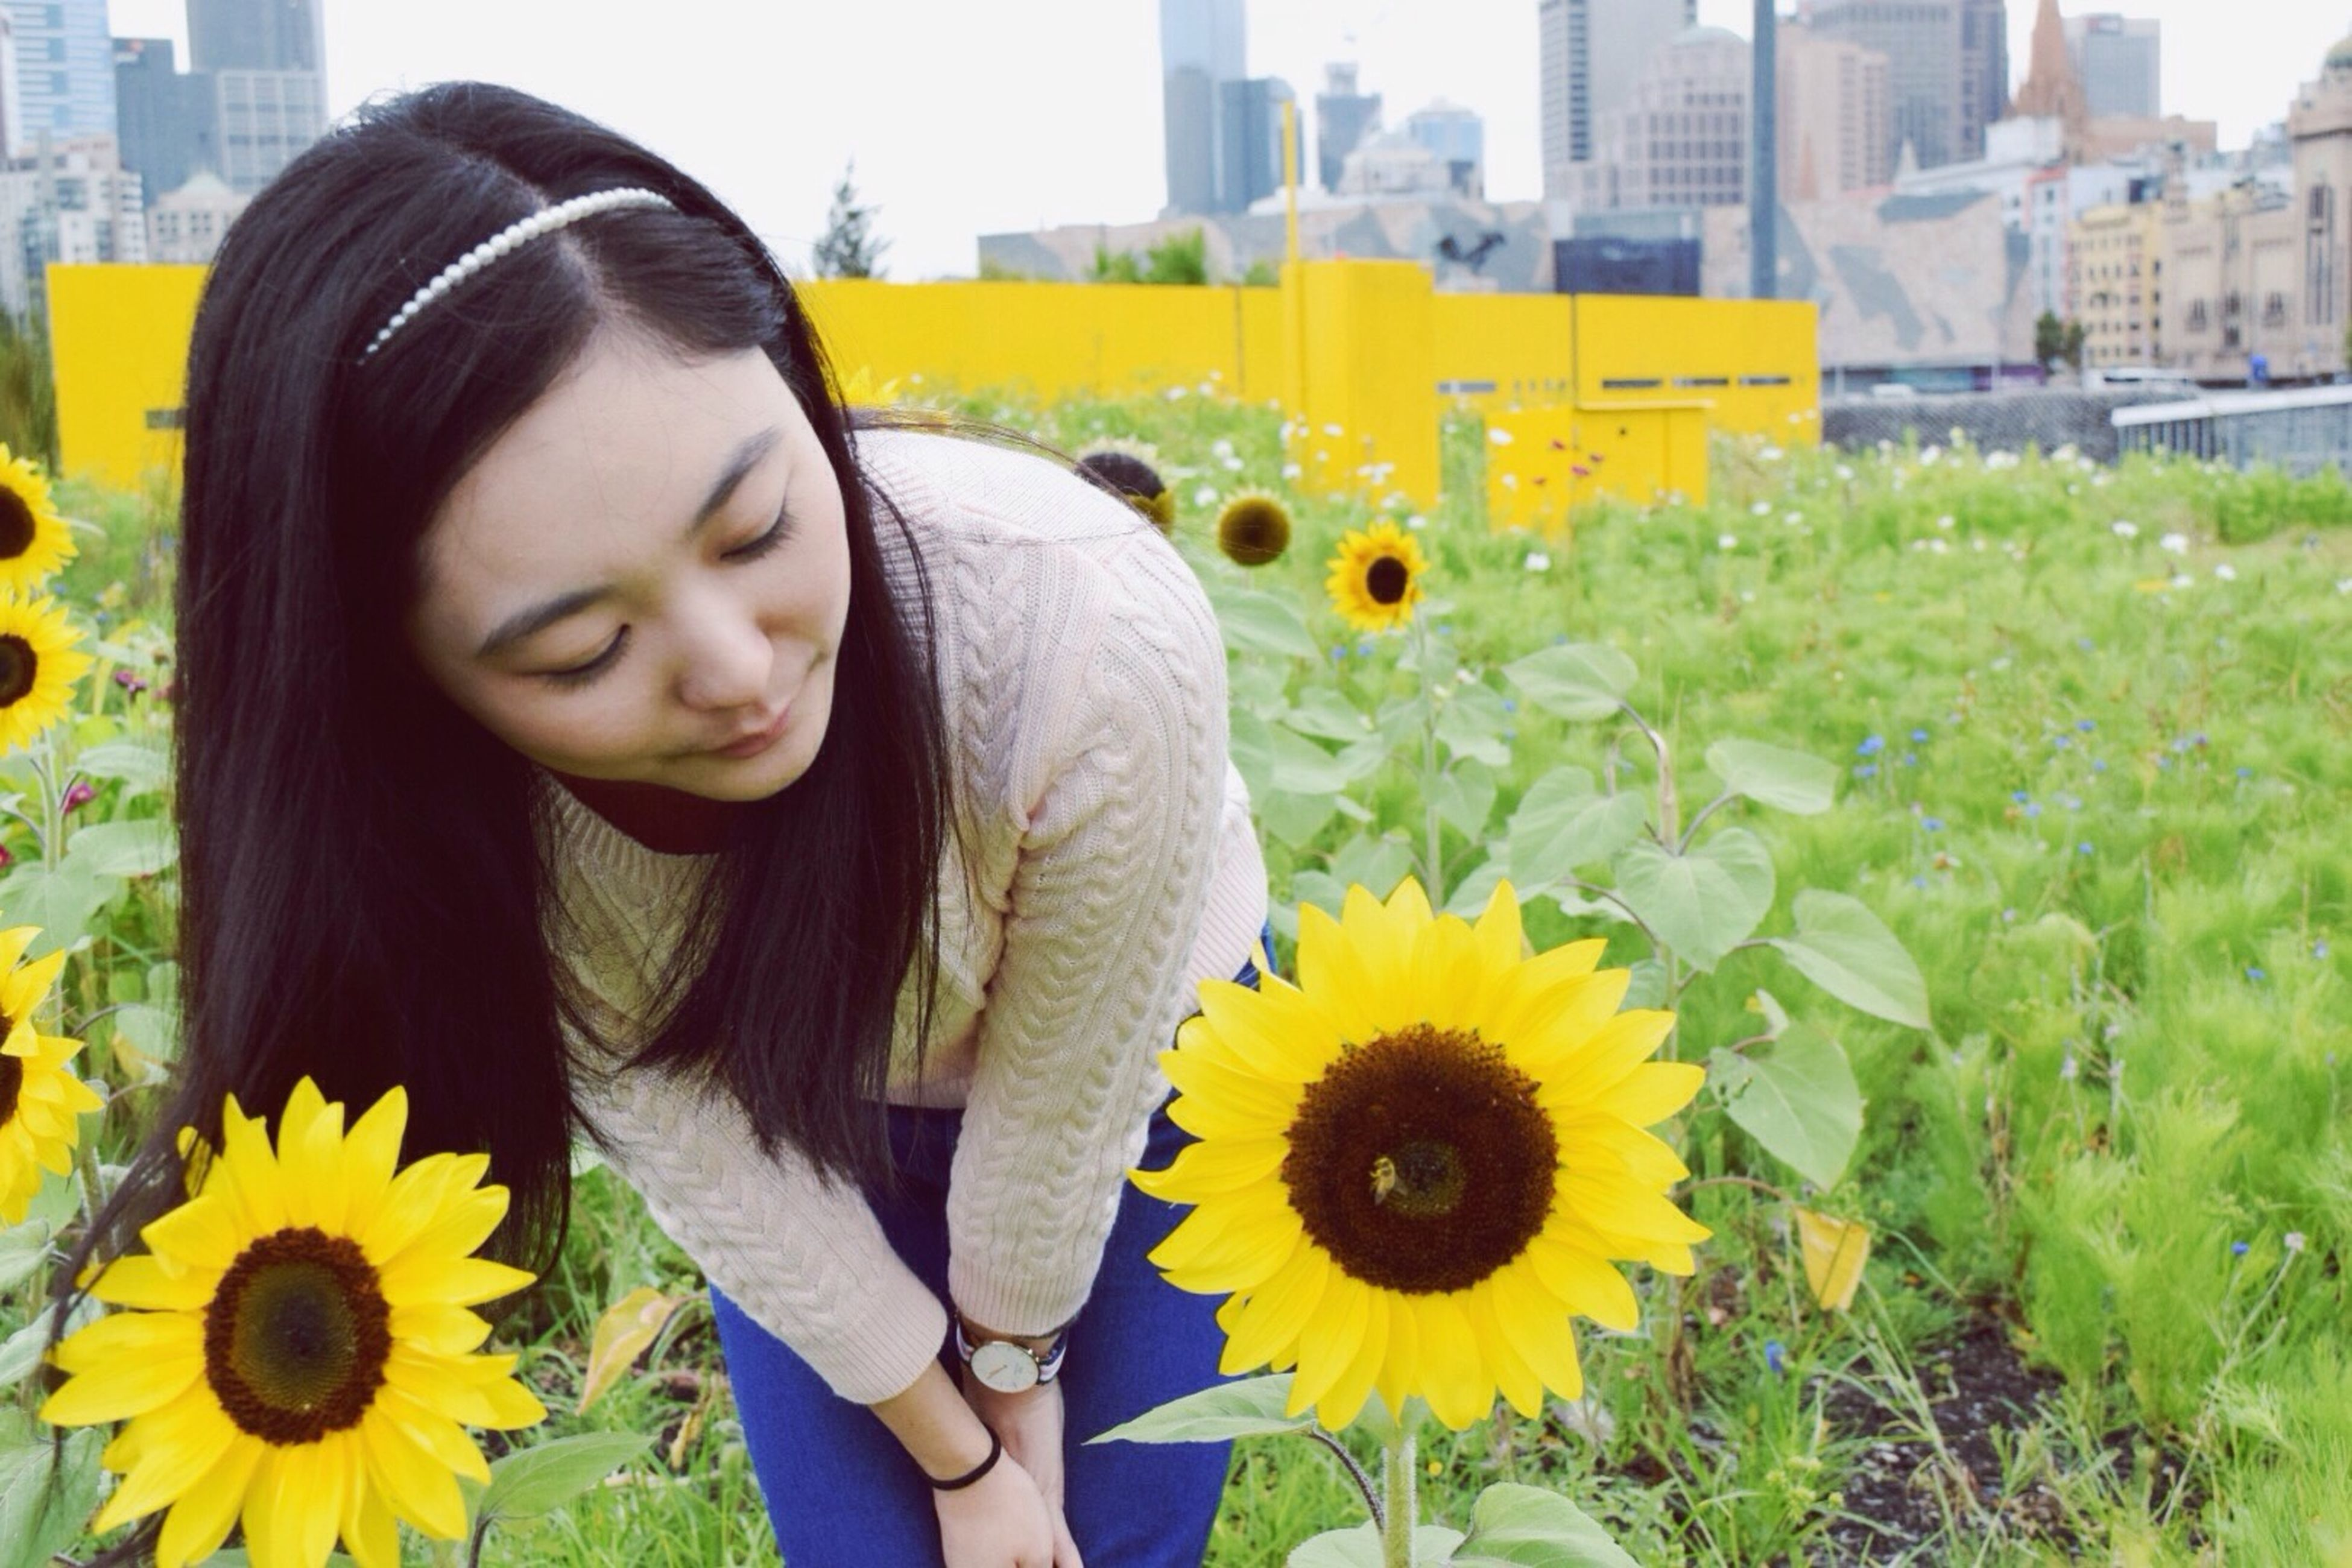 yellow, flower, person, young adult, lifestyles, casual clothing, freshness, smiling, leisure activity, young women, focus on foreground, waist up, fragility, field, growth, portrait, plant, front view